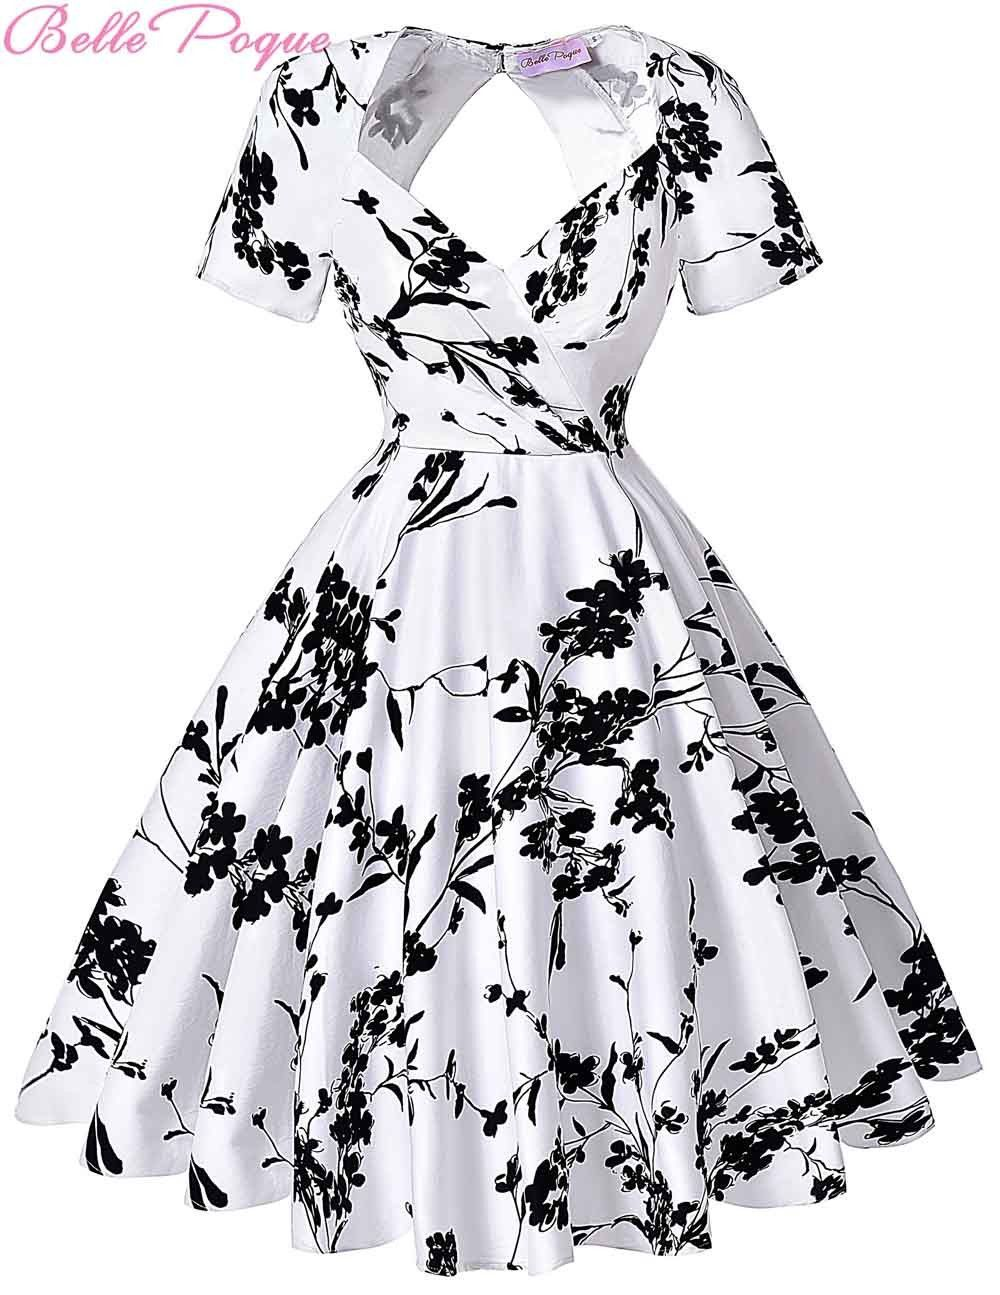 Short Sleeve Floral Print 50s Vintage Dresses Retro Swing Pinup Dance Dress  Plus Size Rockabilly Dress BP000028 Alternative Measures 7af869c6dc68